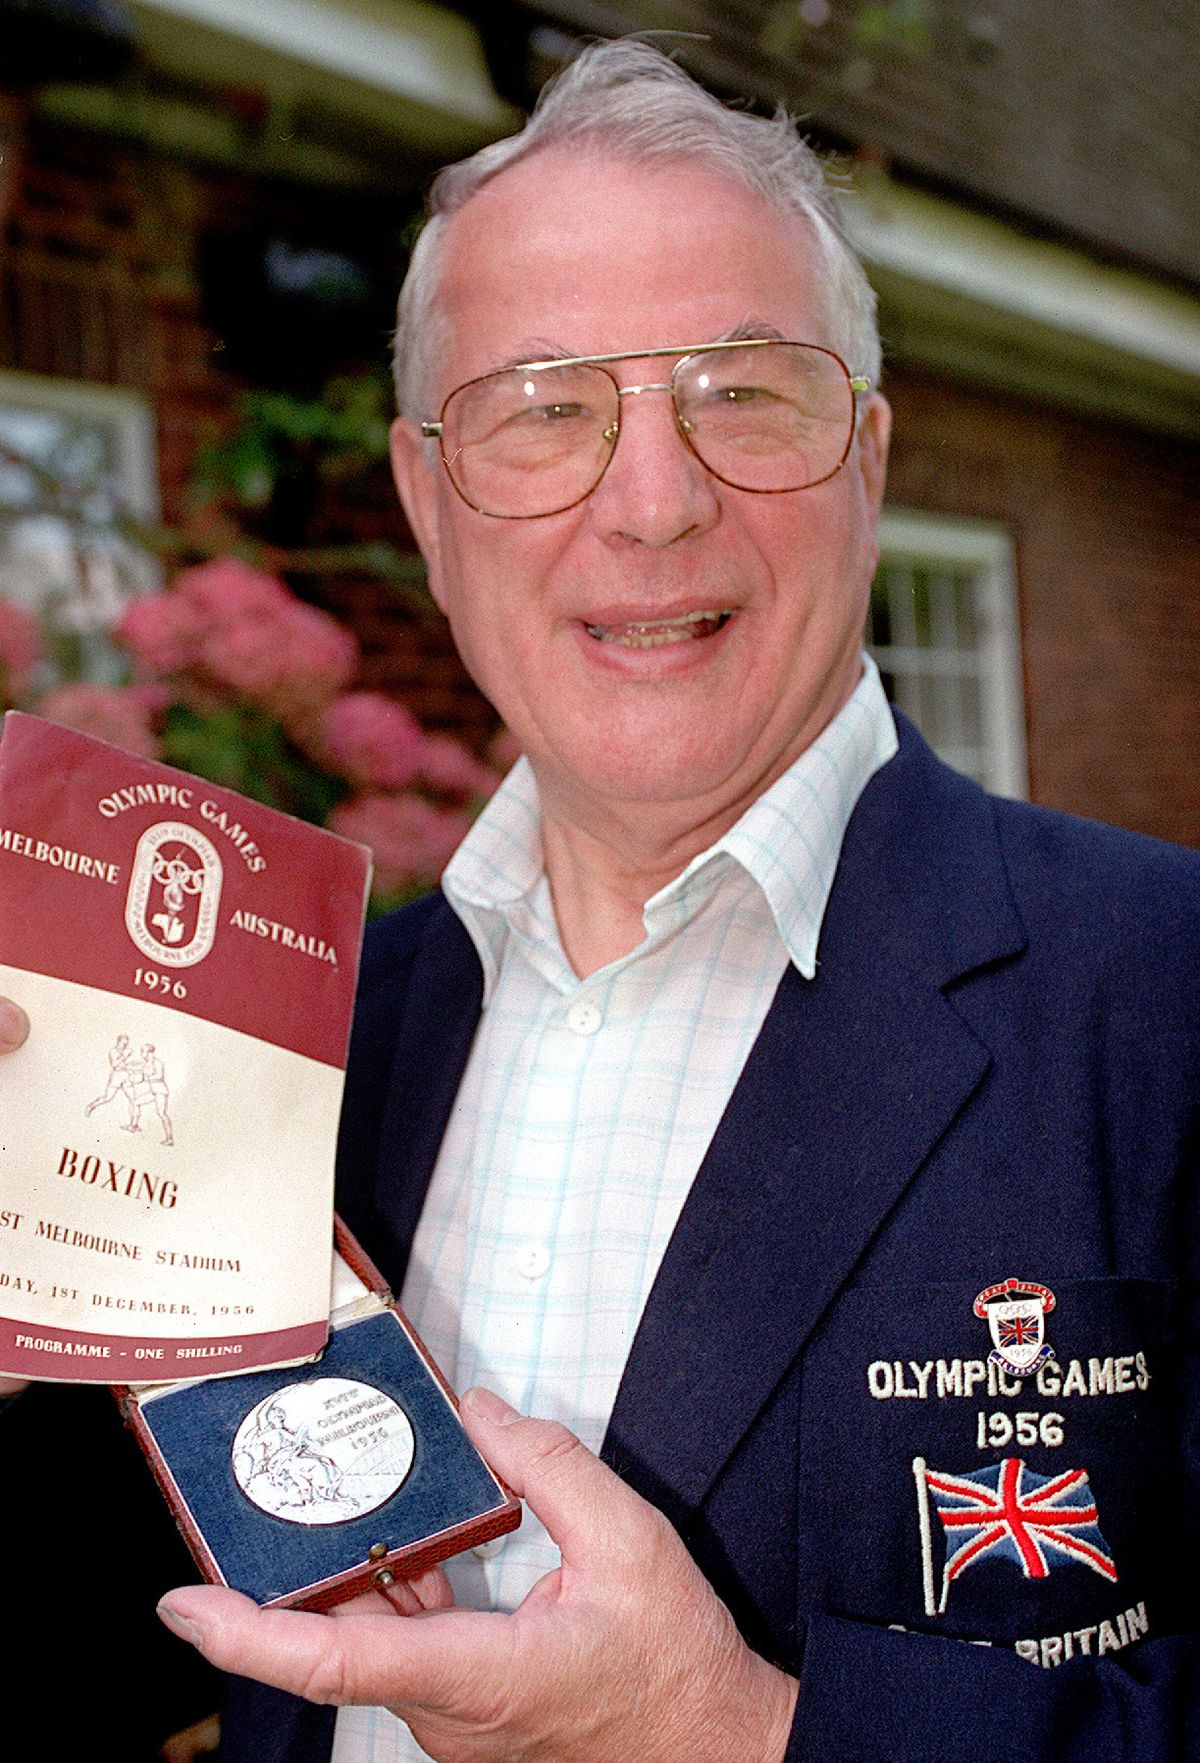 The Shropshire boxing legend with some of his memorabilia